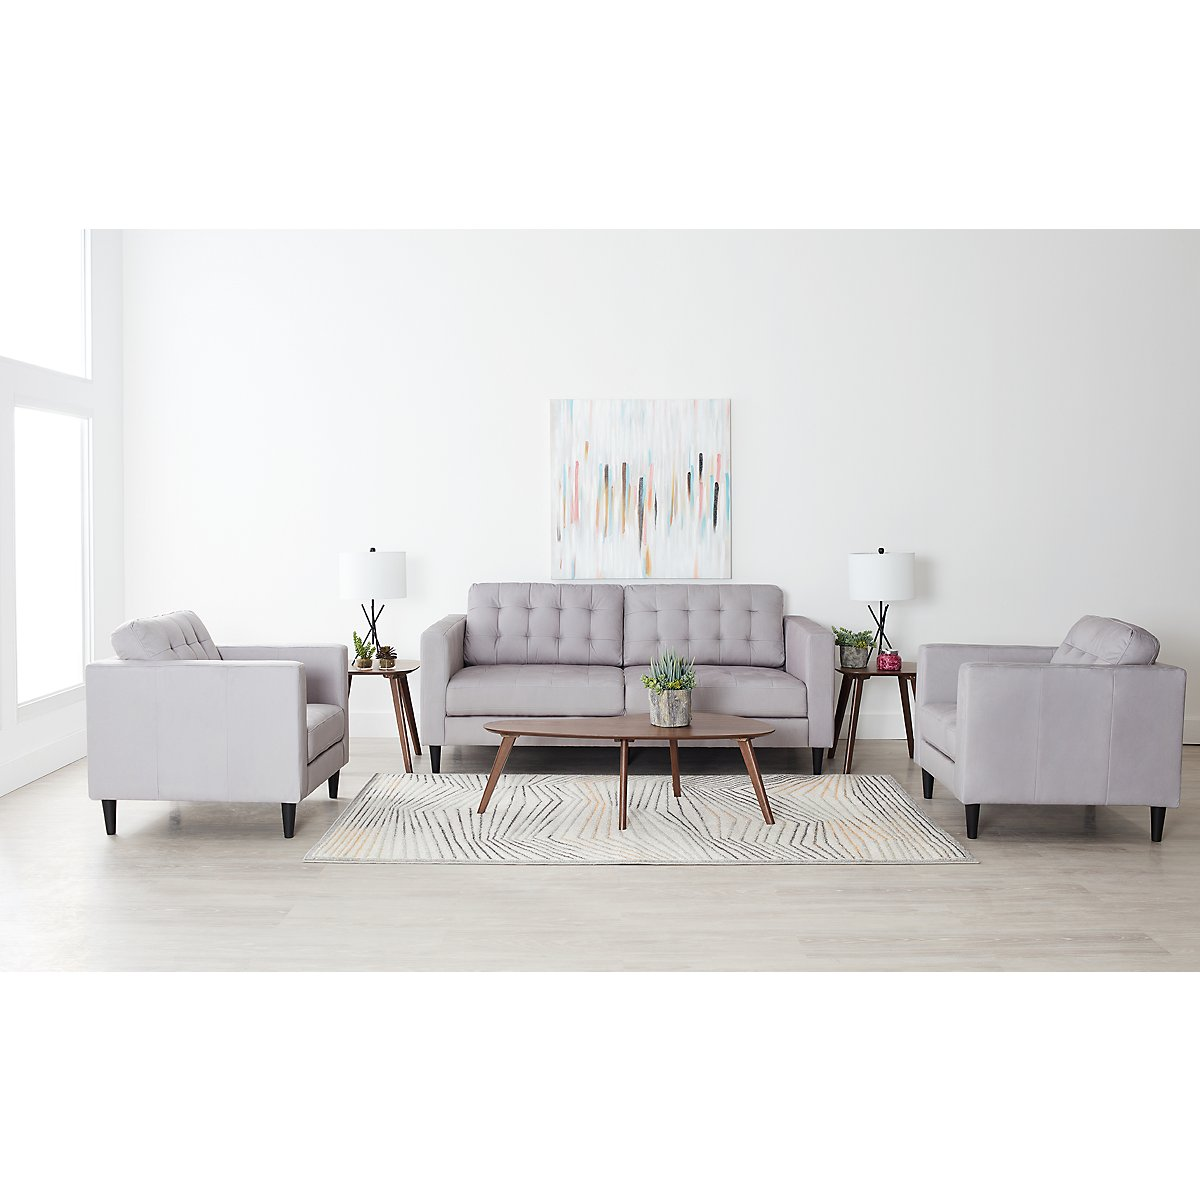 City Furniture: Shae Light Gray Microfiber 7-Piece Living Room Package